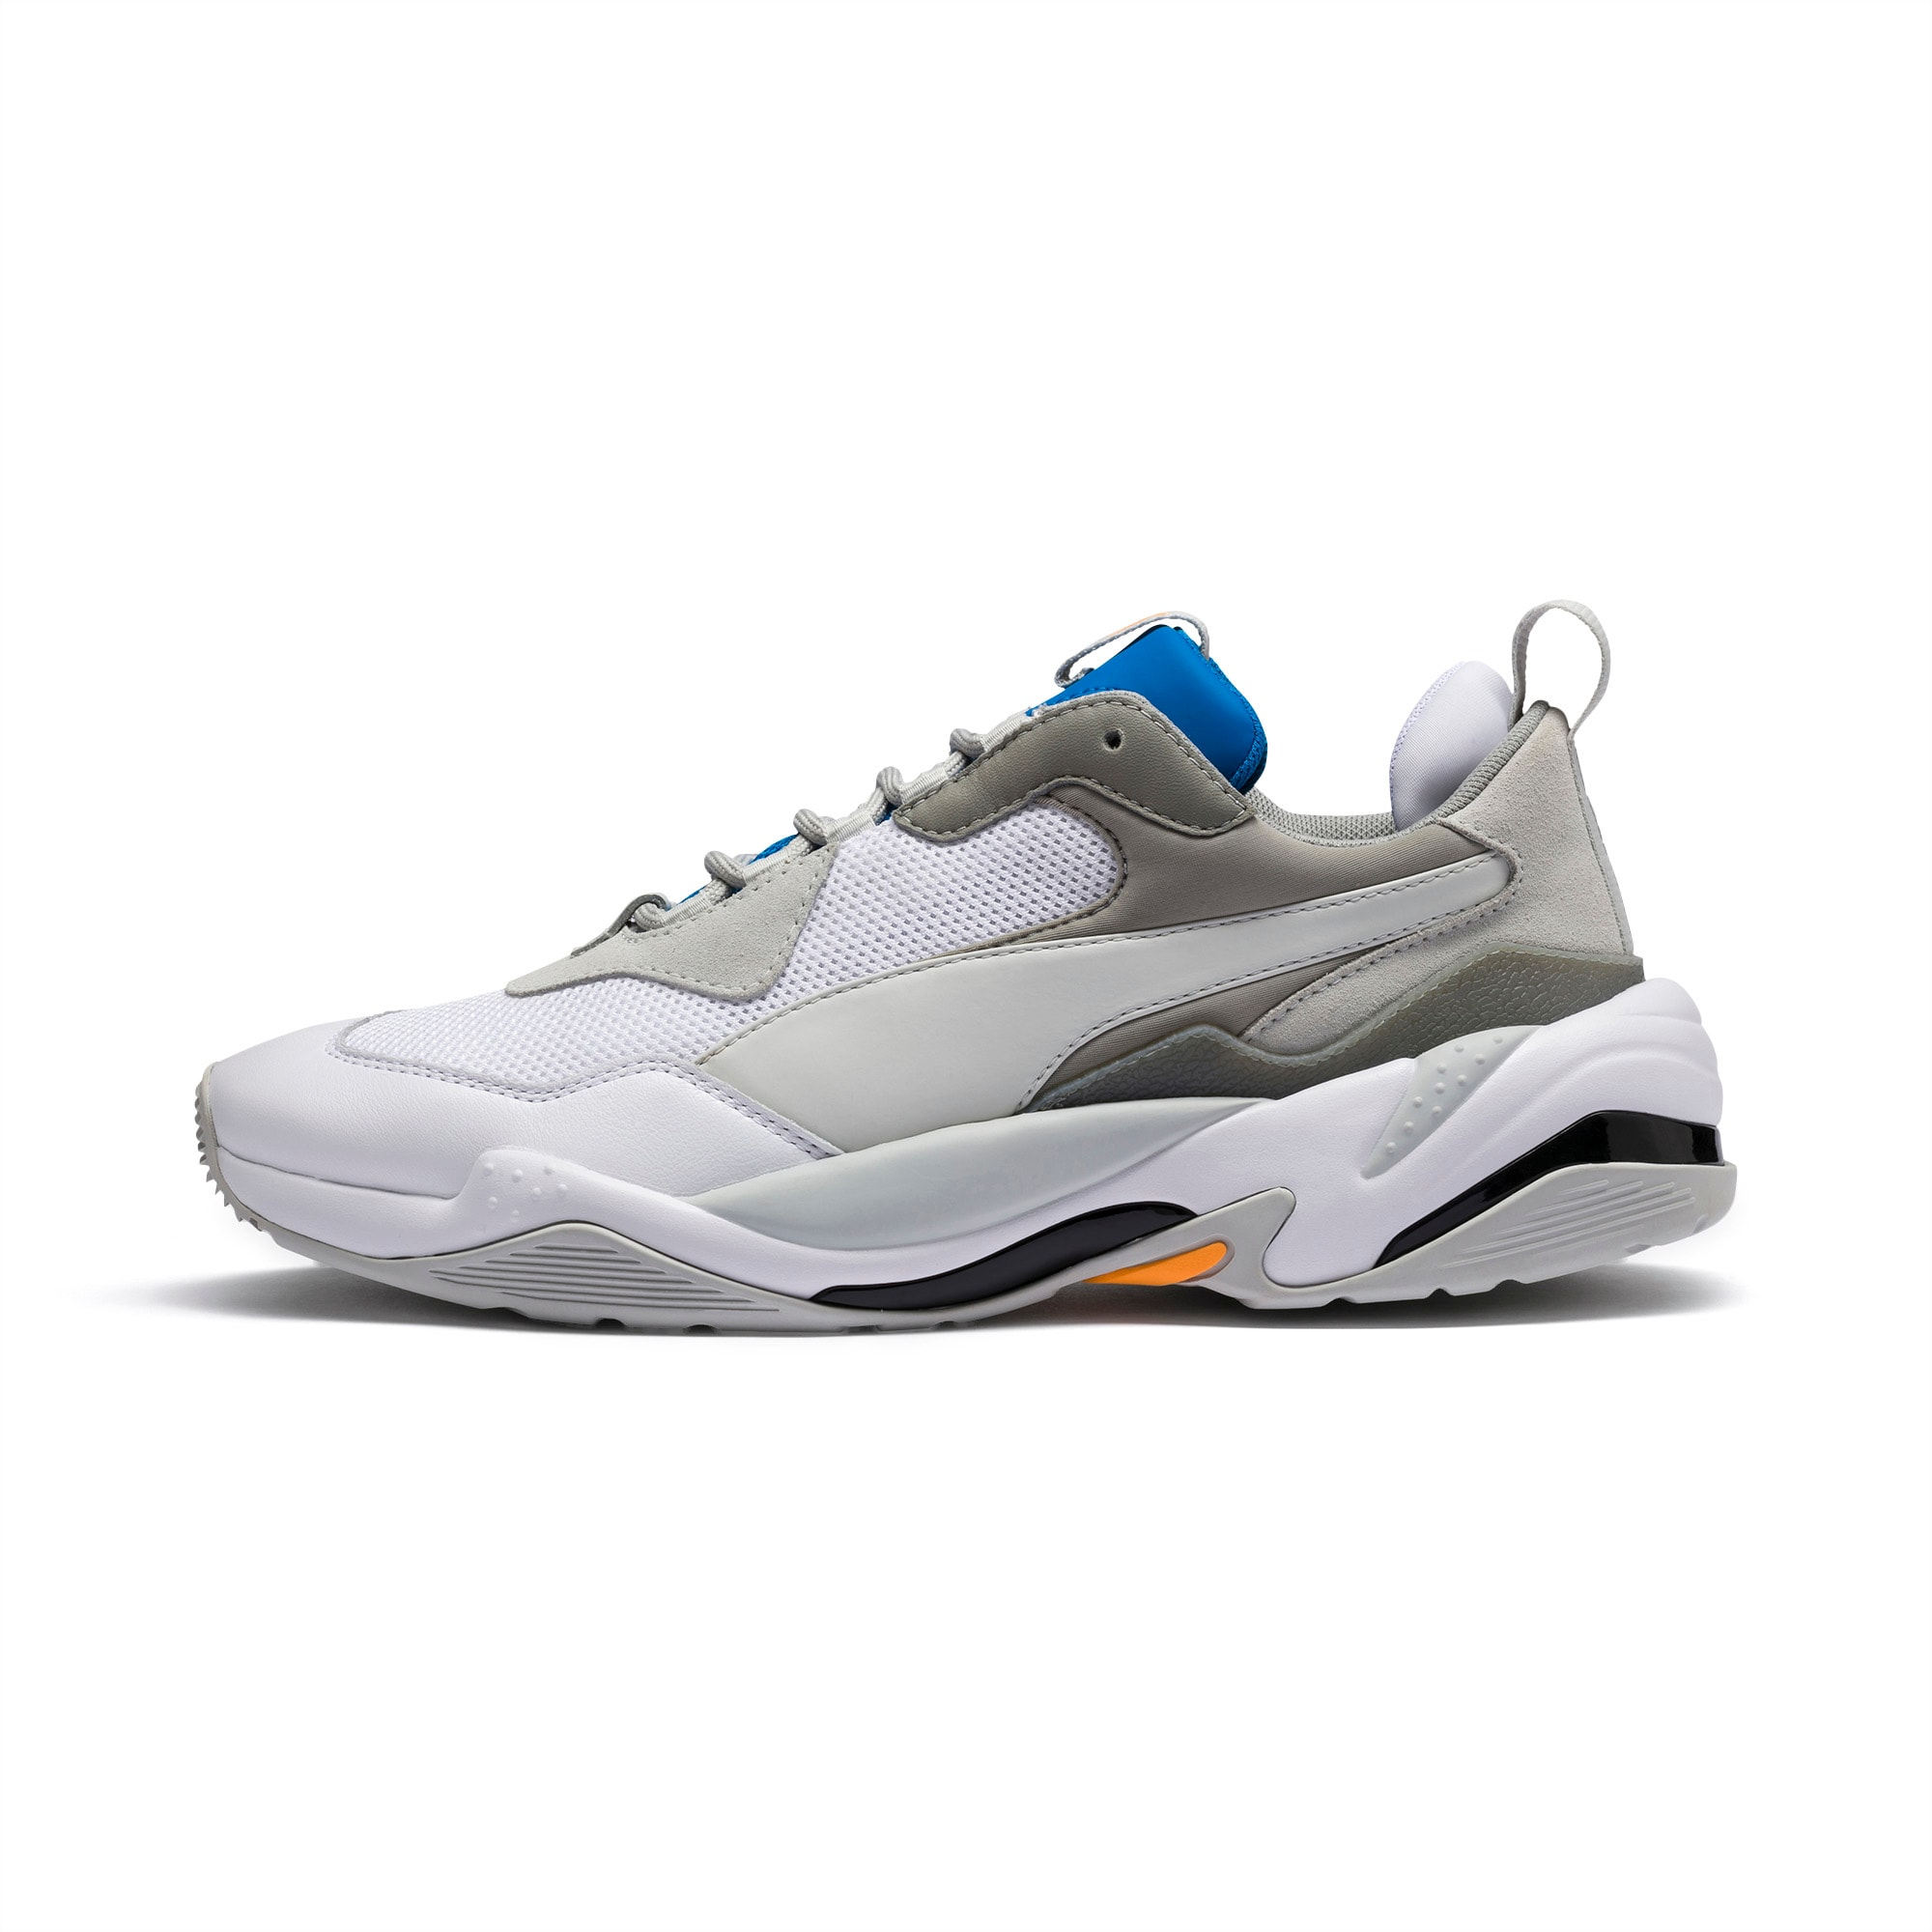 Thunder Spectra Shoes